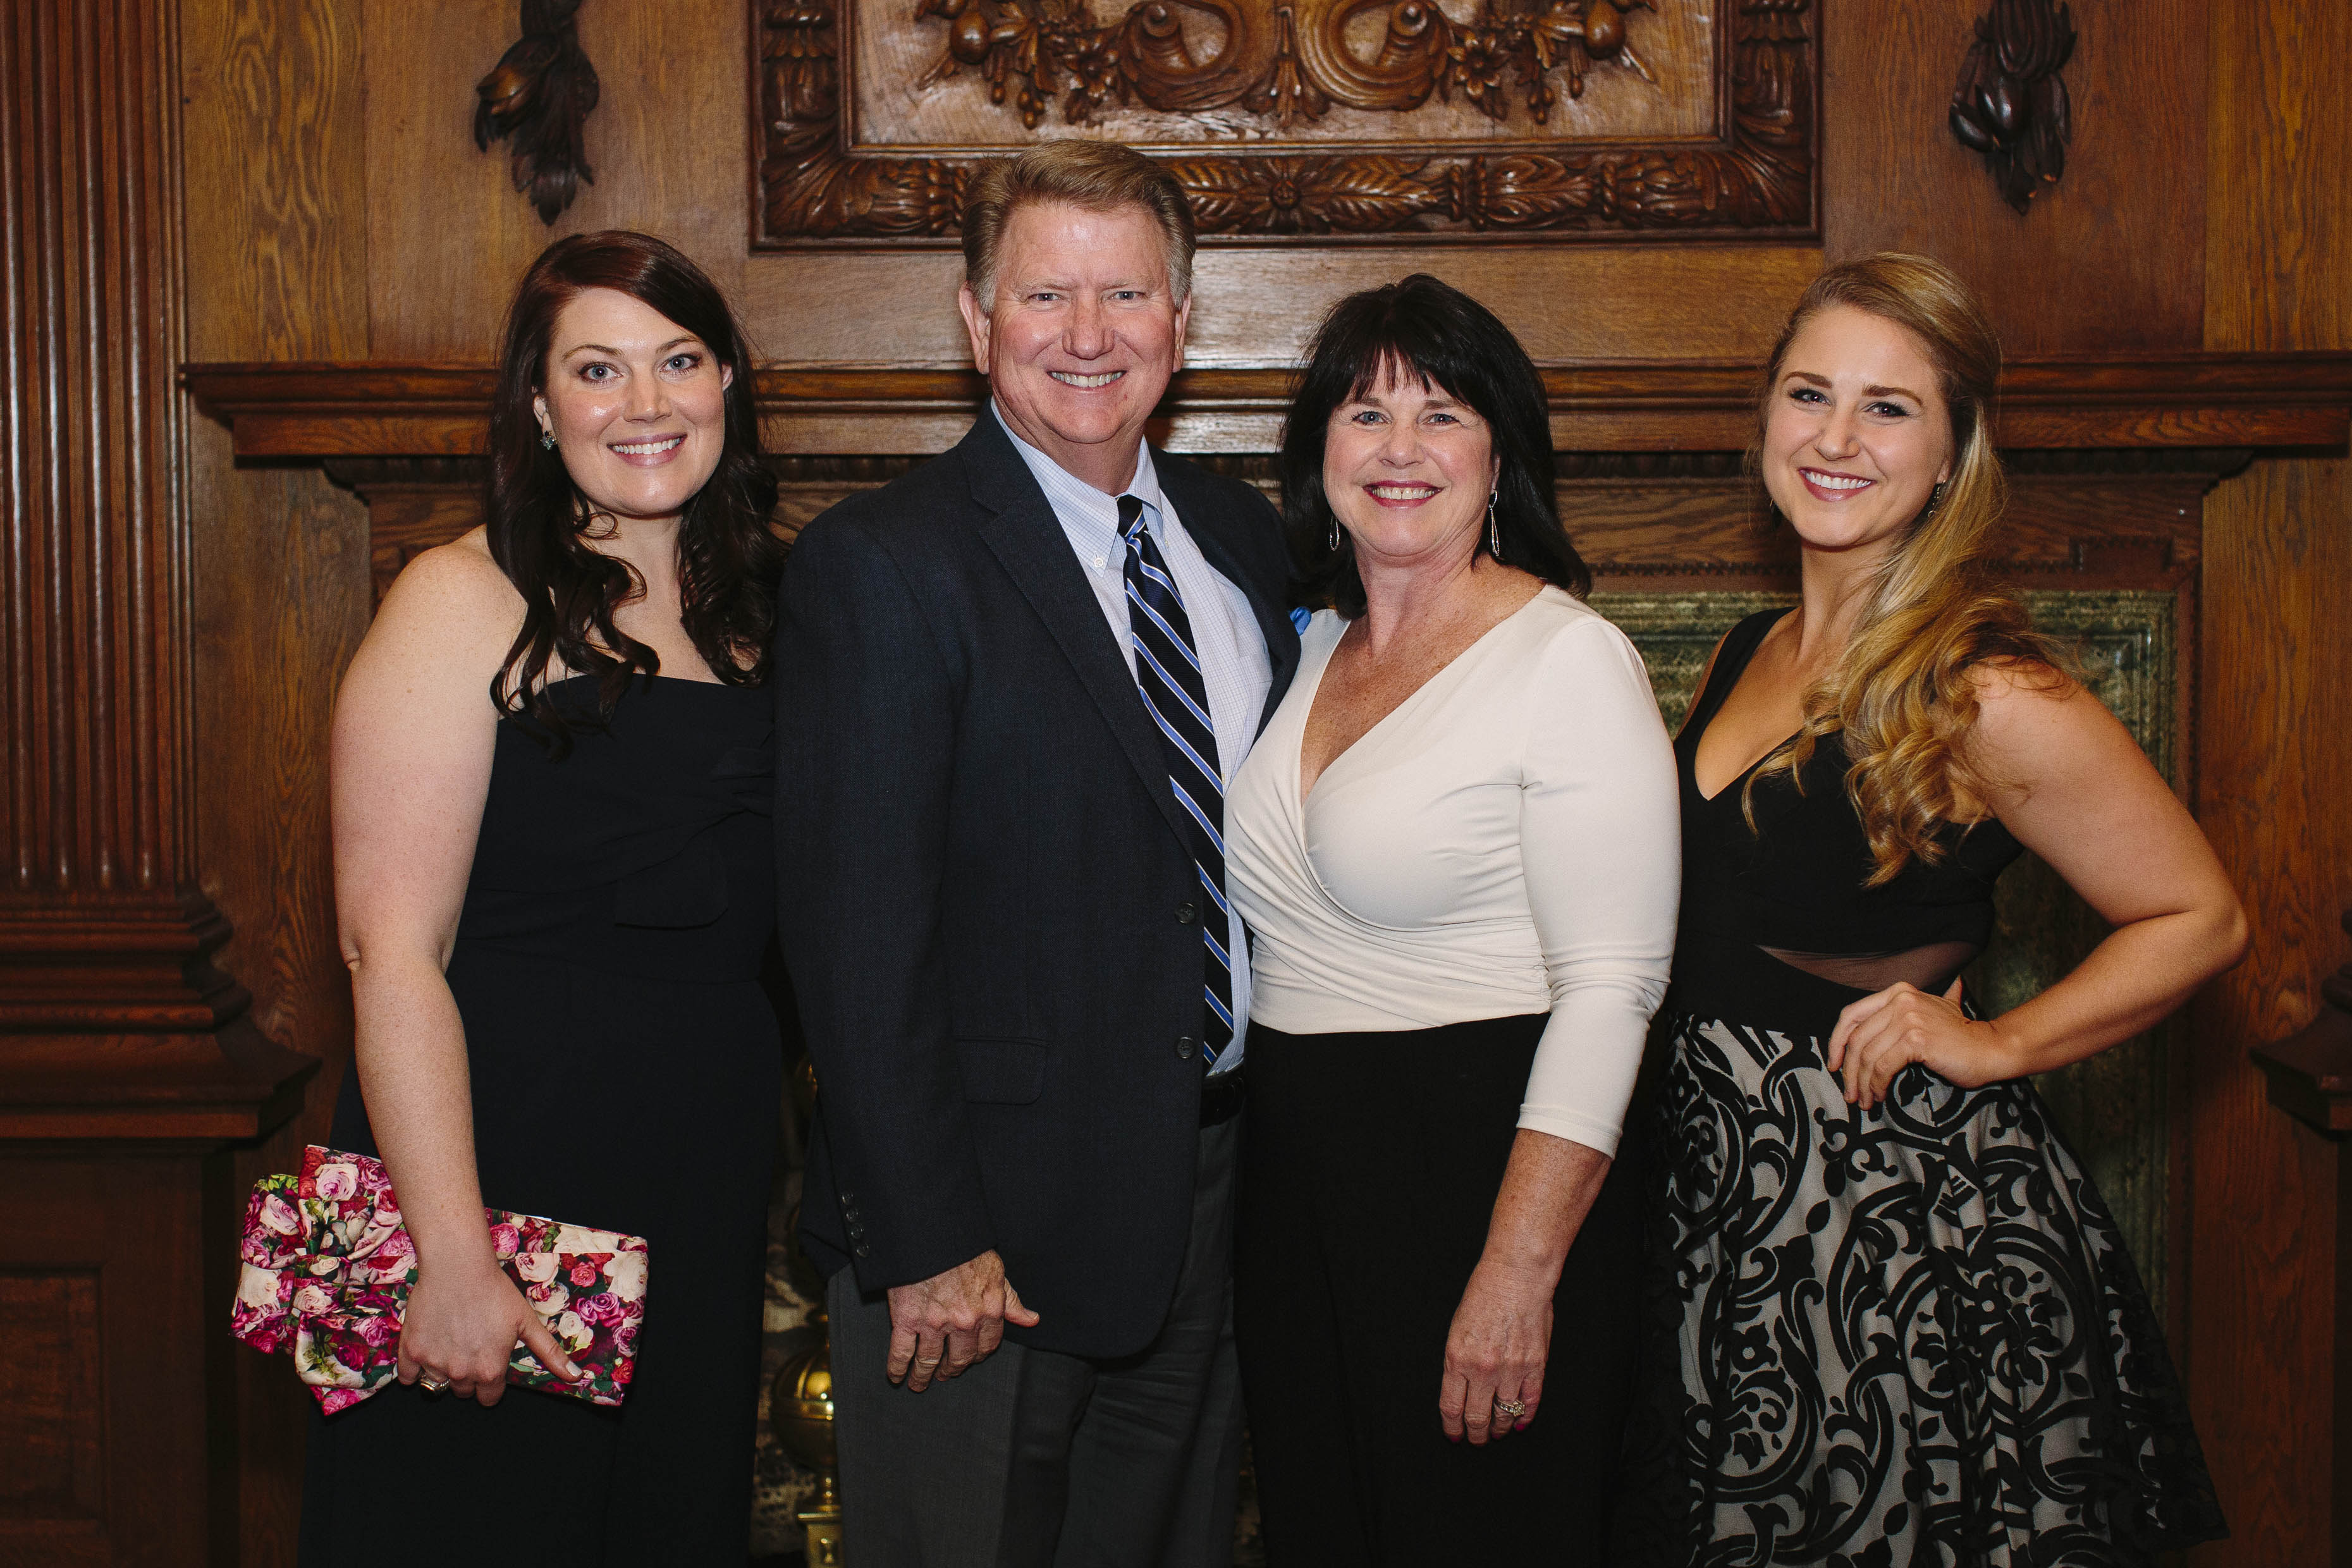 2017 Wine Tasting Chairs Emily and Kelly Lambert with CLO Board Chairman Bill Lambert and wife Sandy